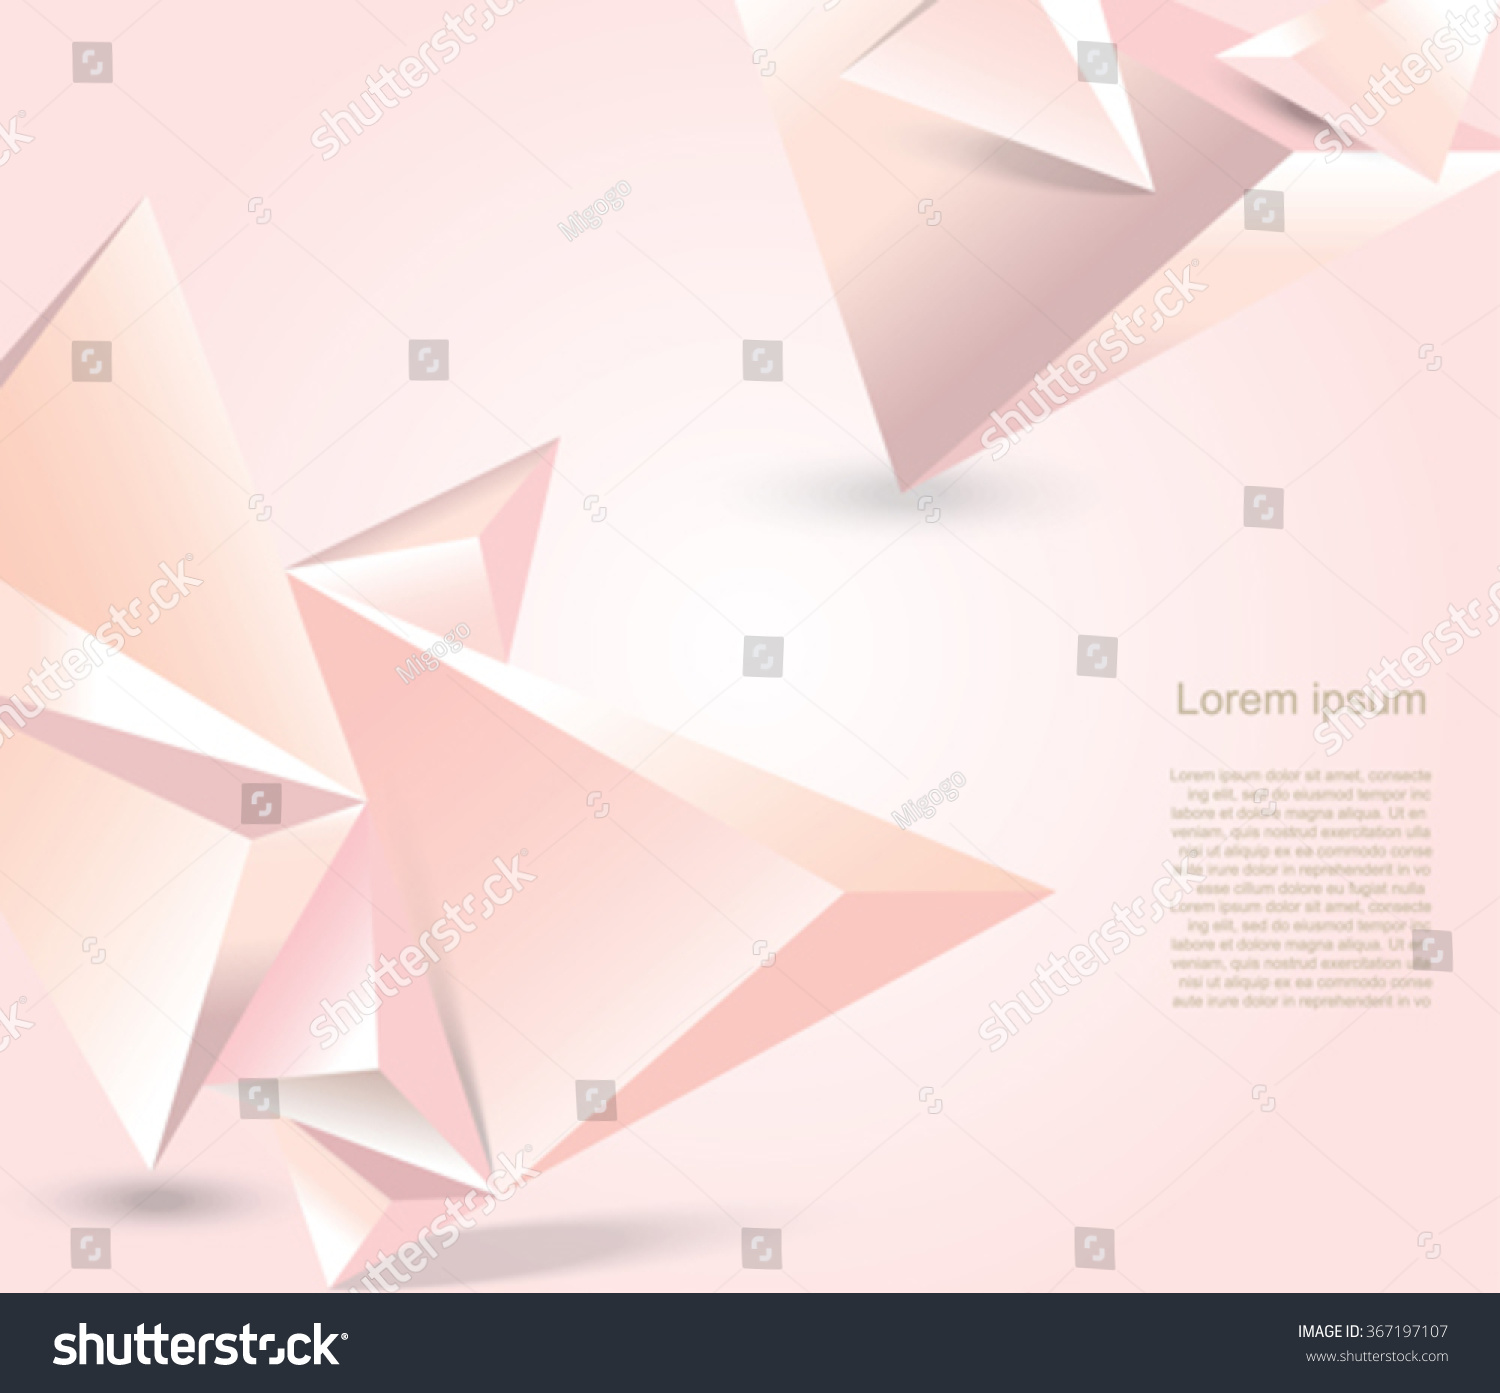 Geometrical Polygonal Design Background Aabstract Form Stock